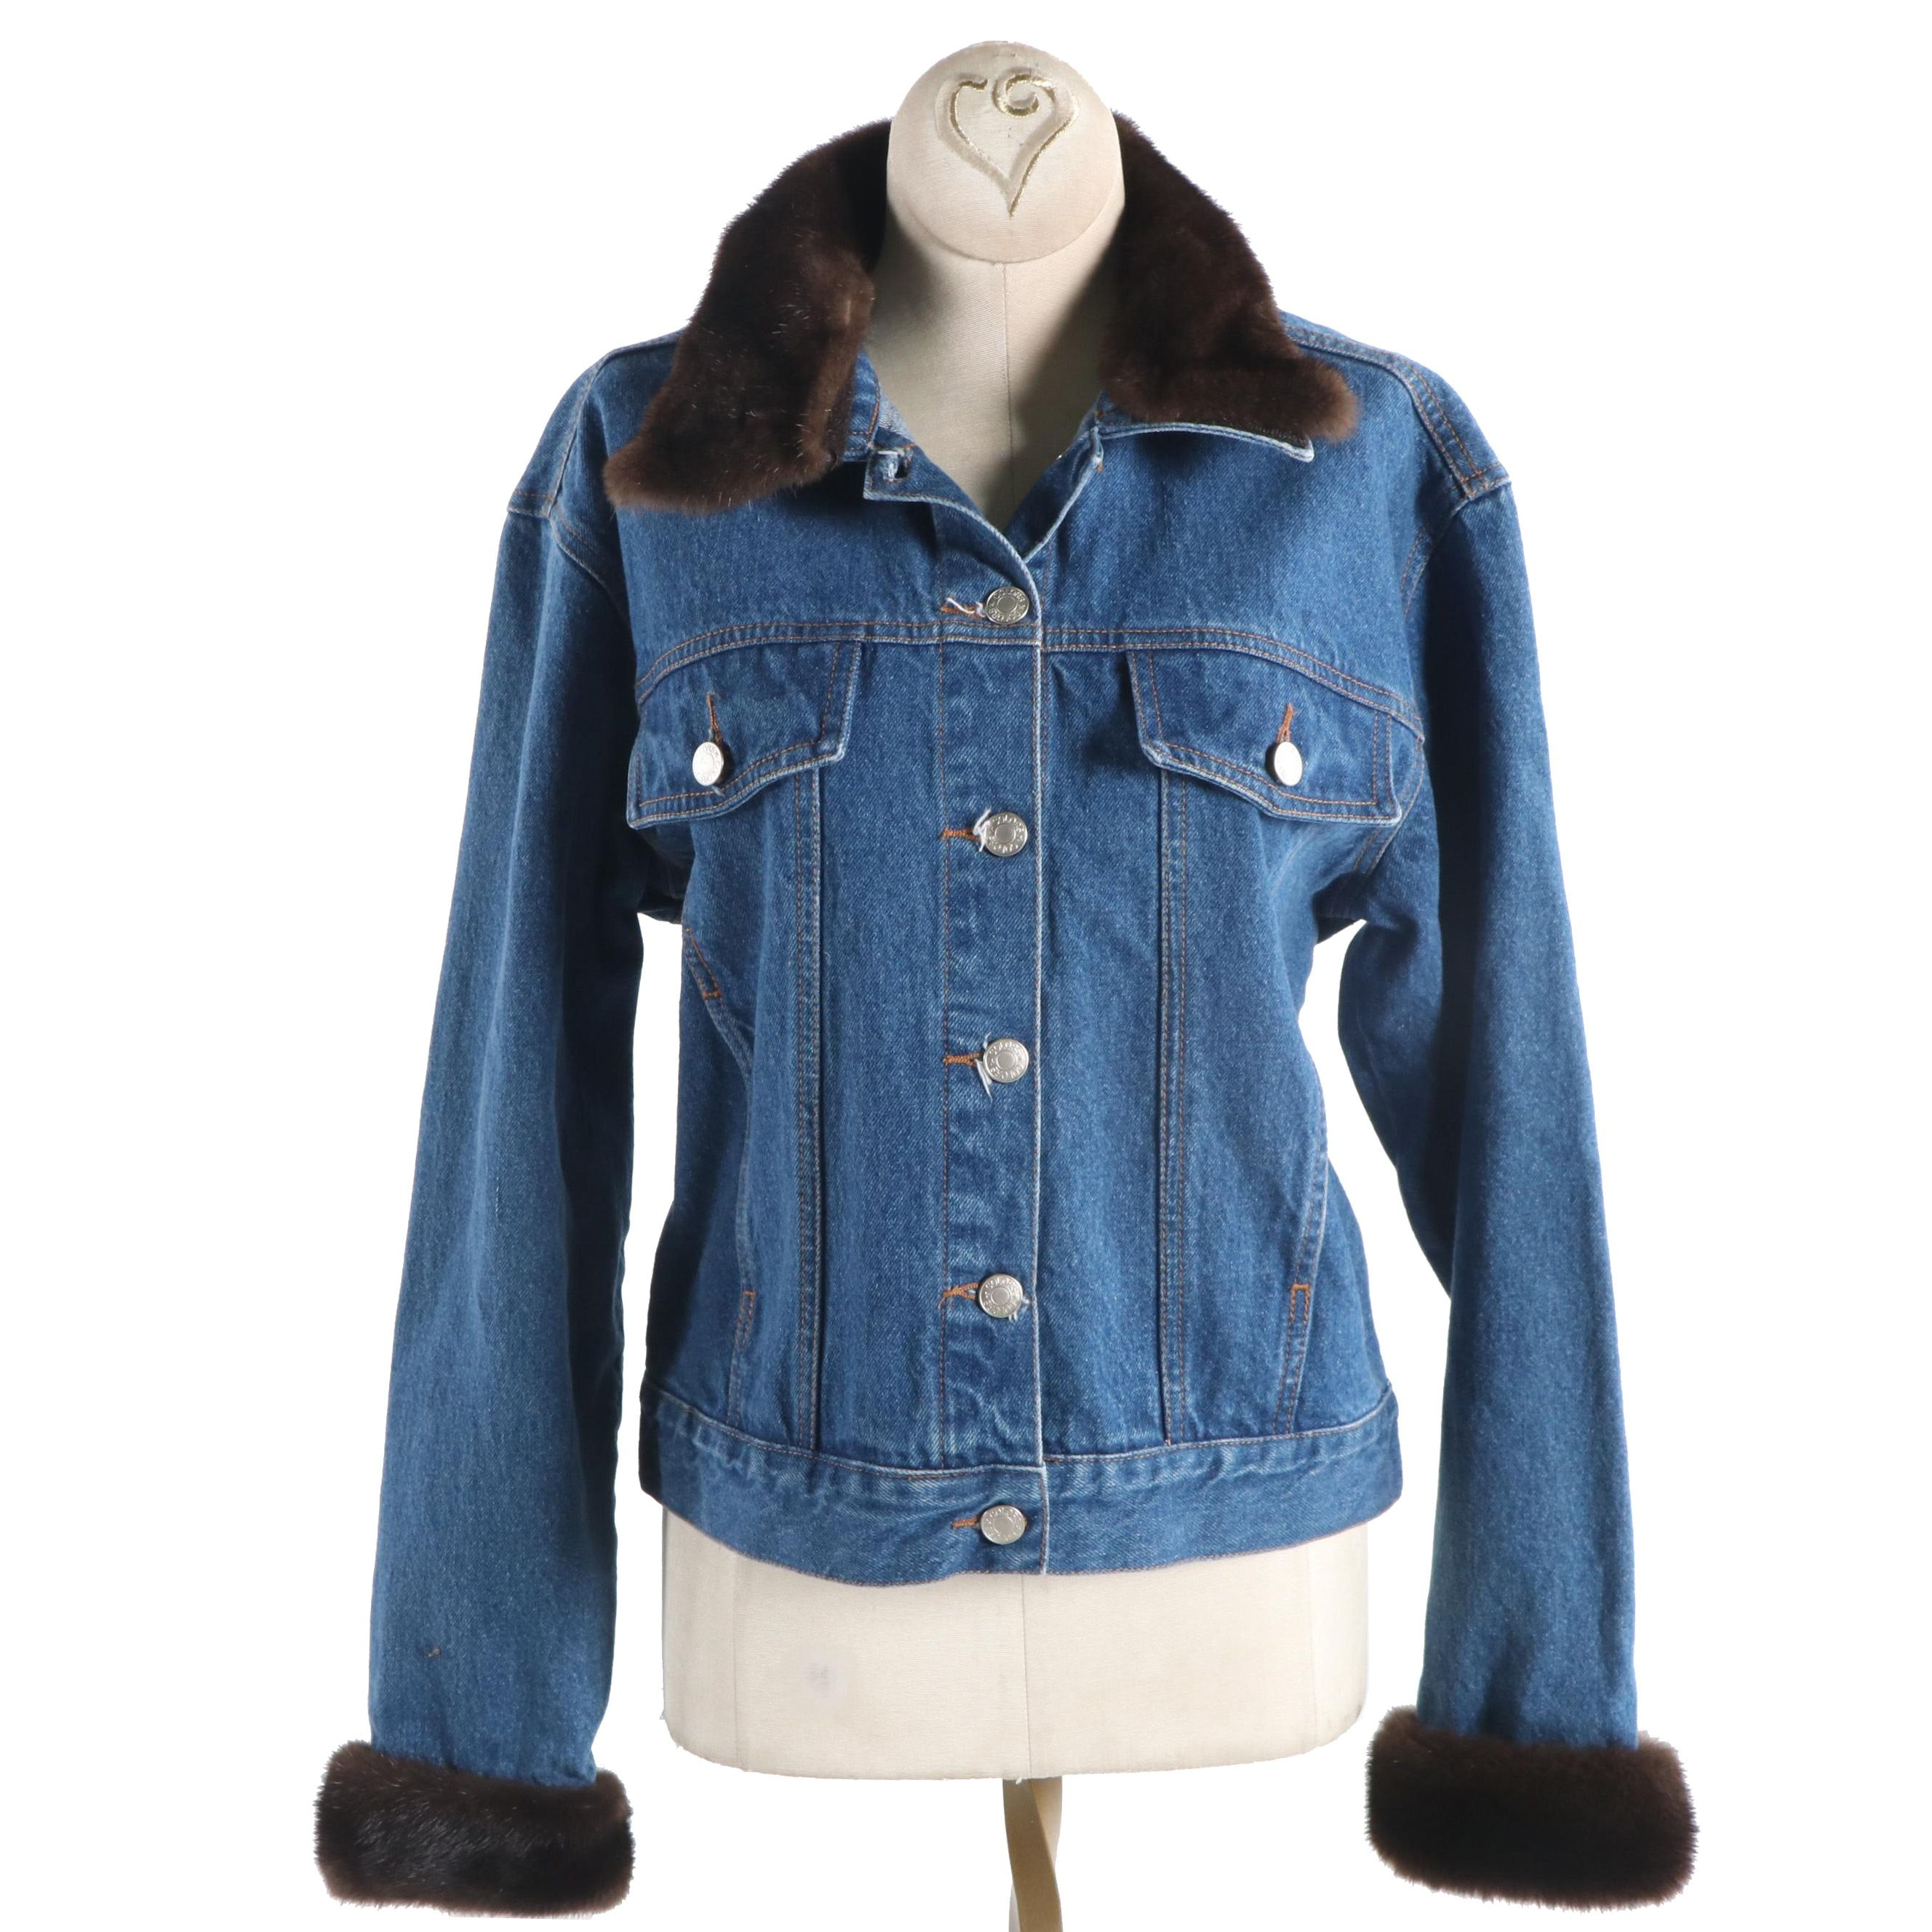 Women's Colors Denim Jacket With Mink Collar and Cuffs